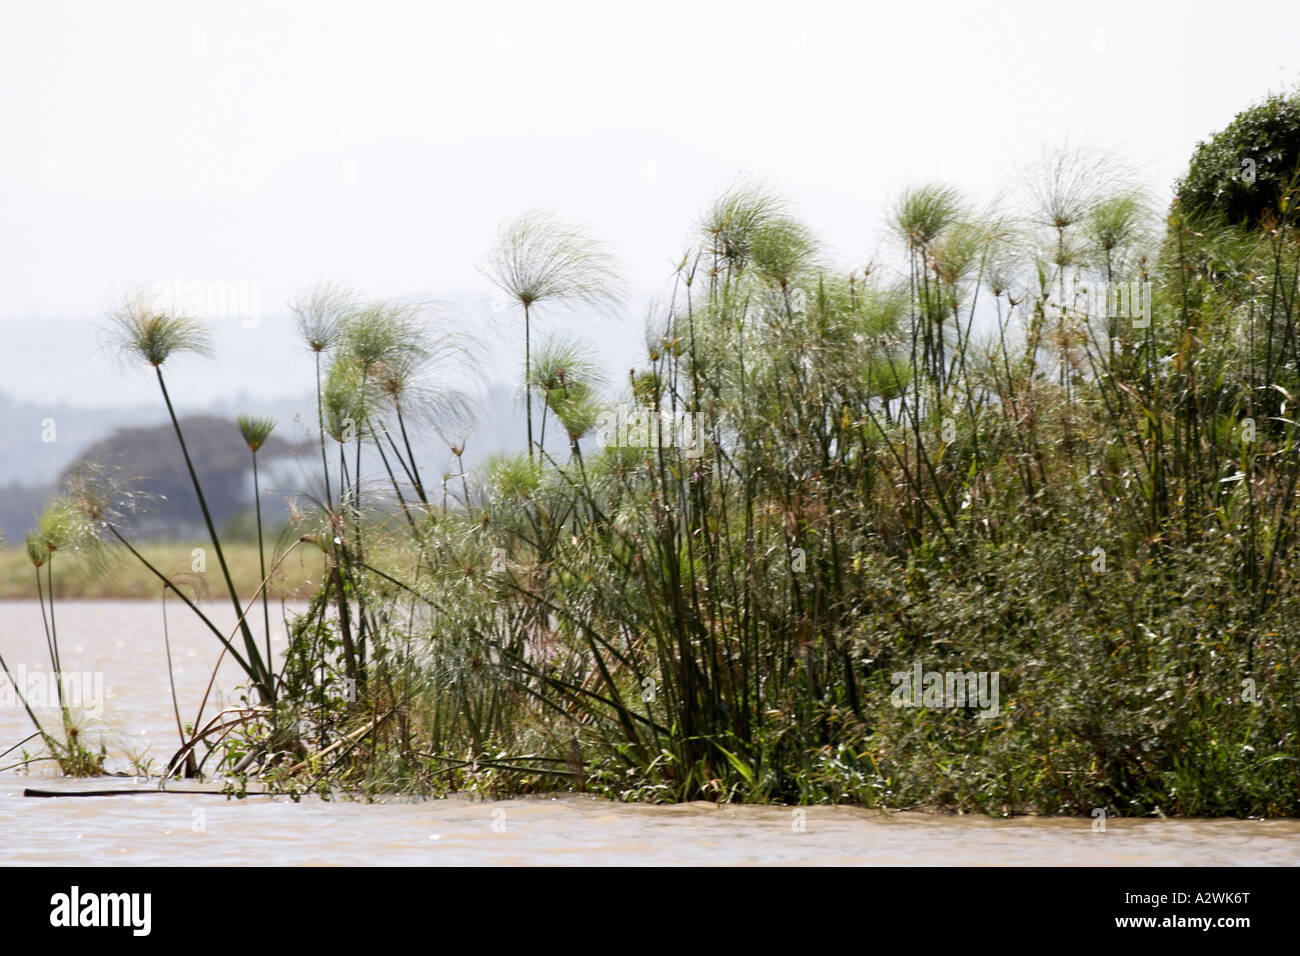 Image source plantsam com - Papyrus Reed Plants On Island In Source Of Blue Nile River On Lake Tana